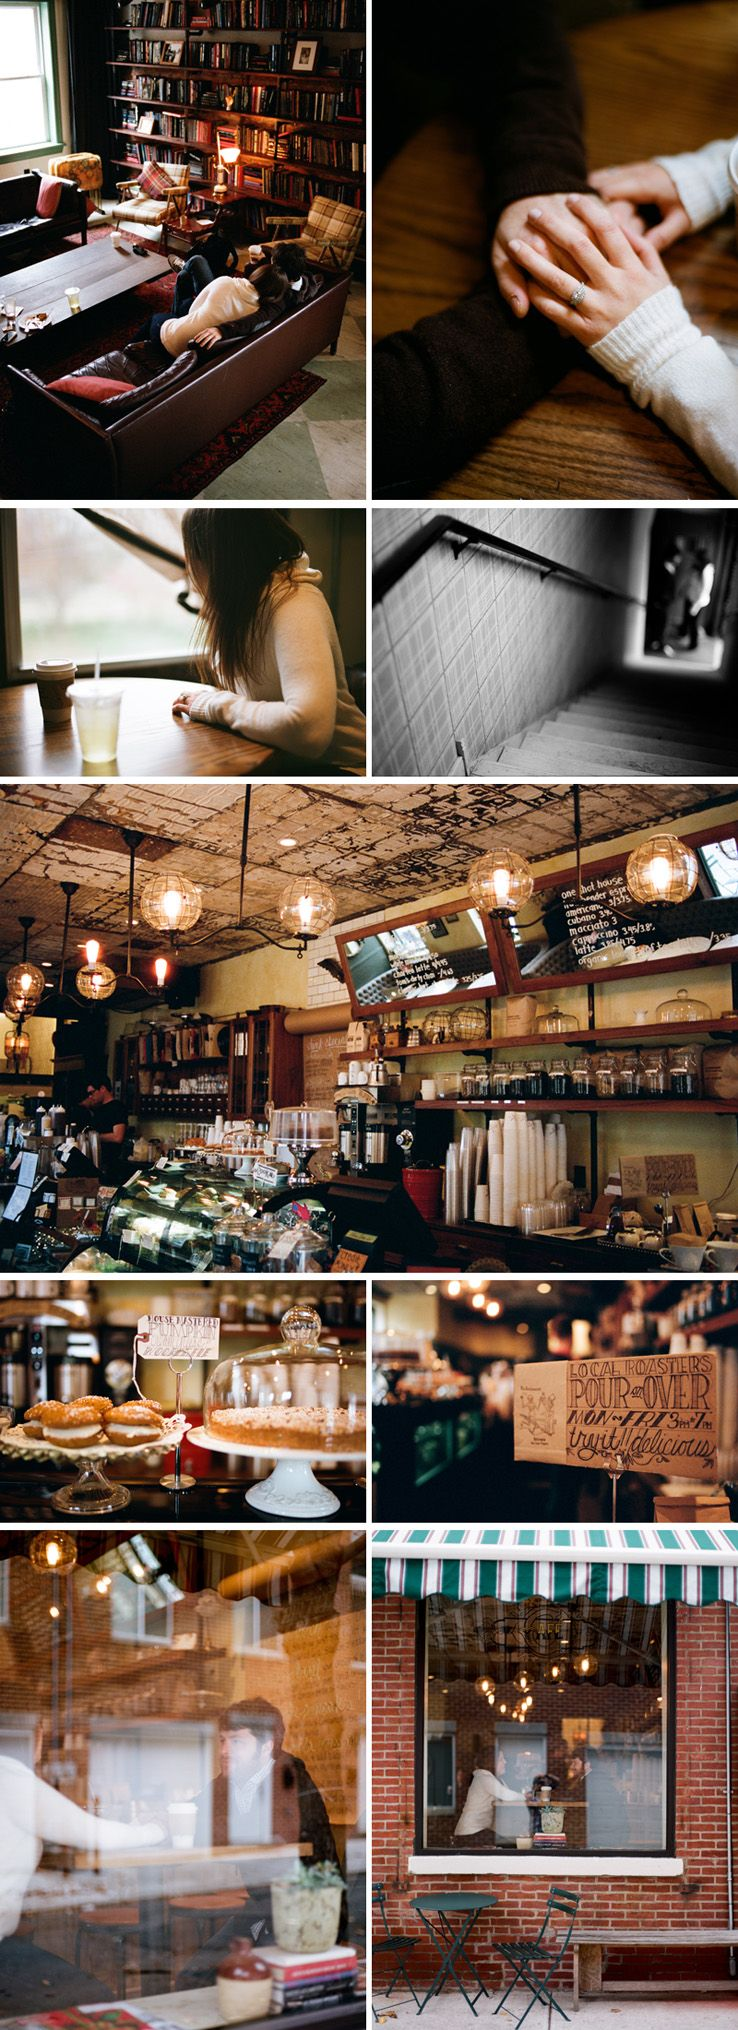 Coffee Shop Love Cute With Images Cozy Coffee Shop Coffee